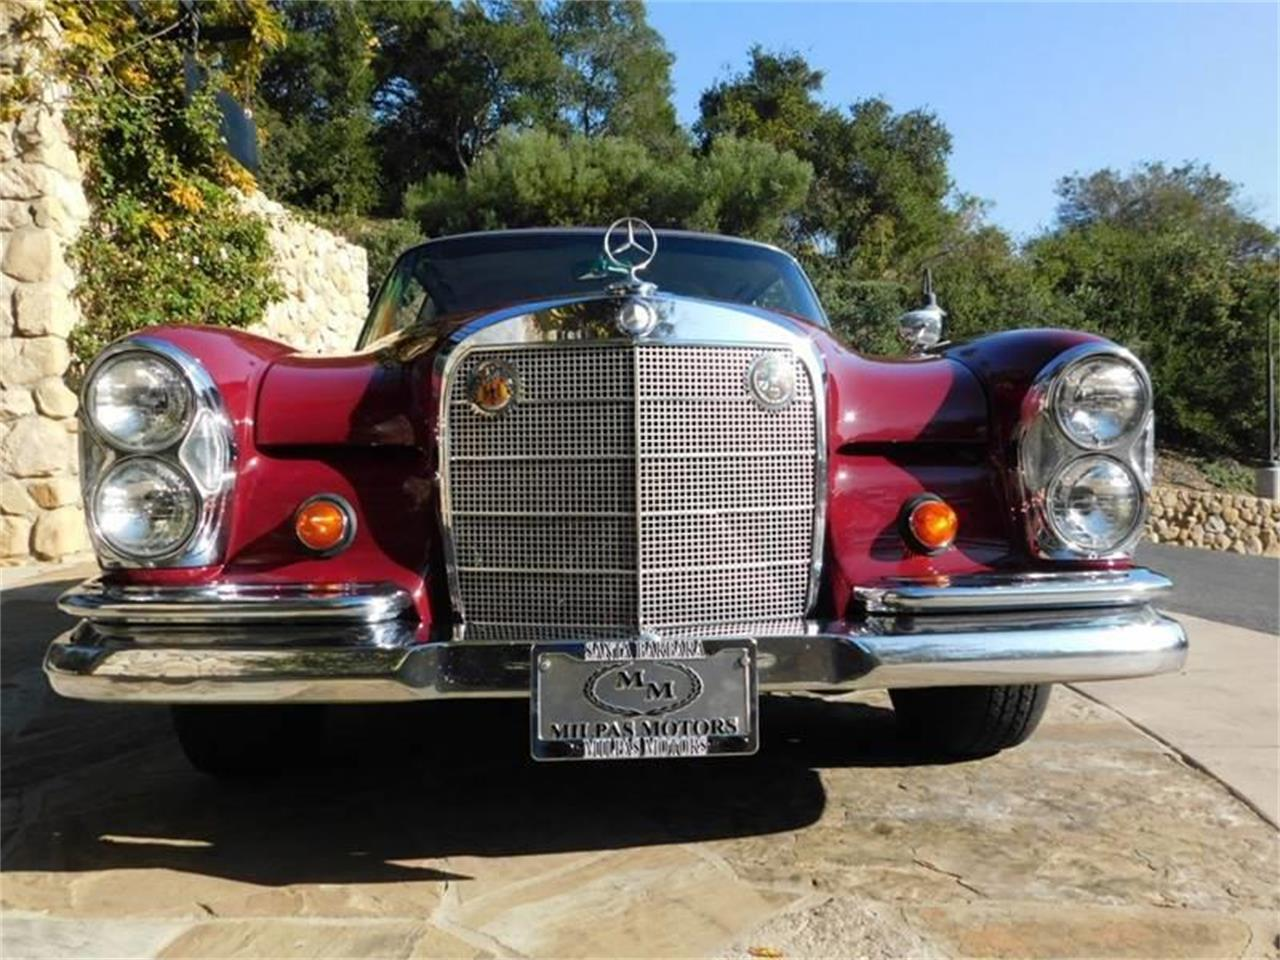 1962 Mercedes-Benz 220SE for sale in Santa Barbara, CA ...